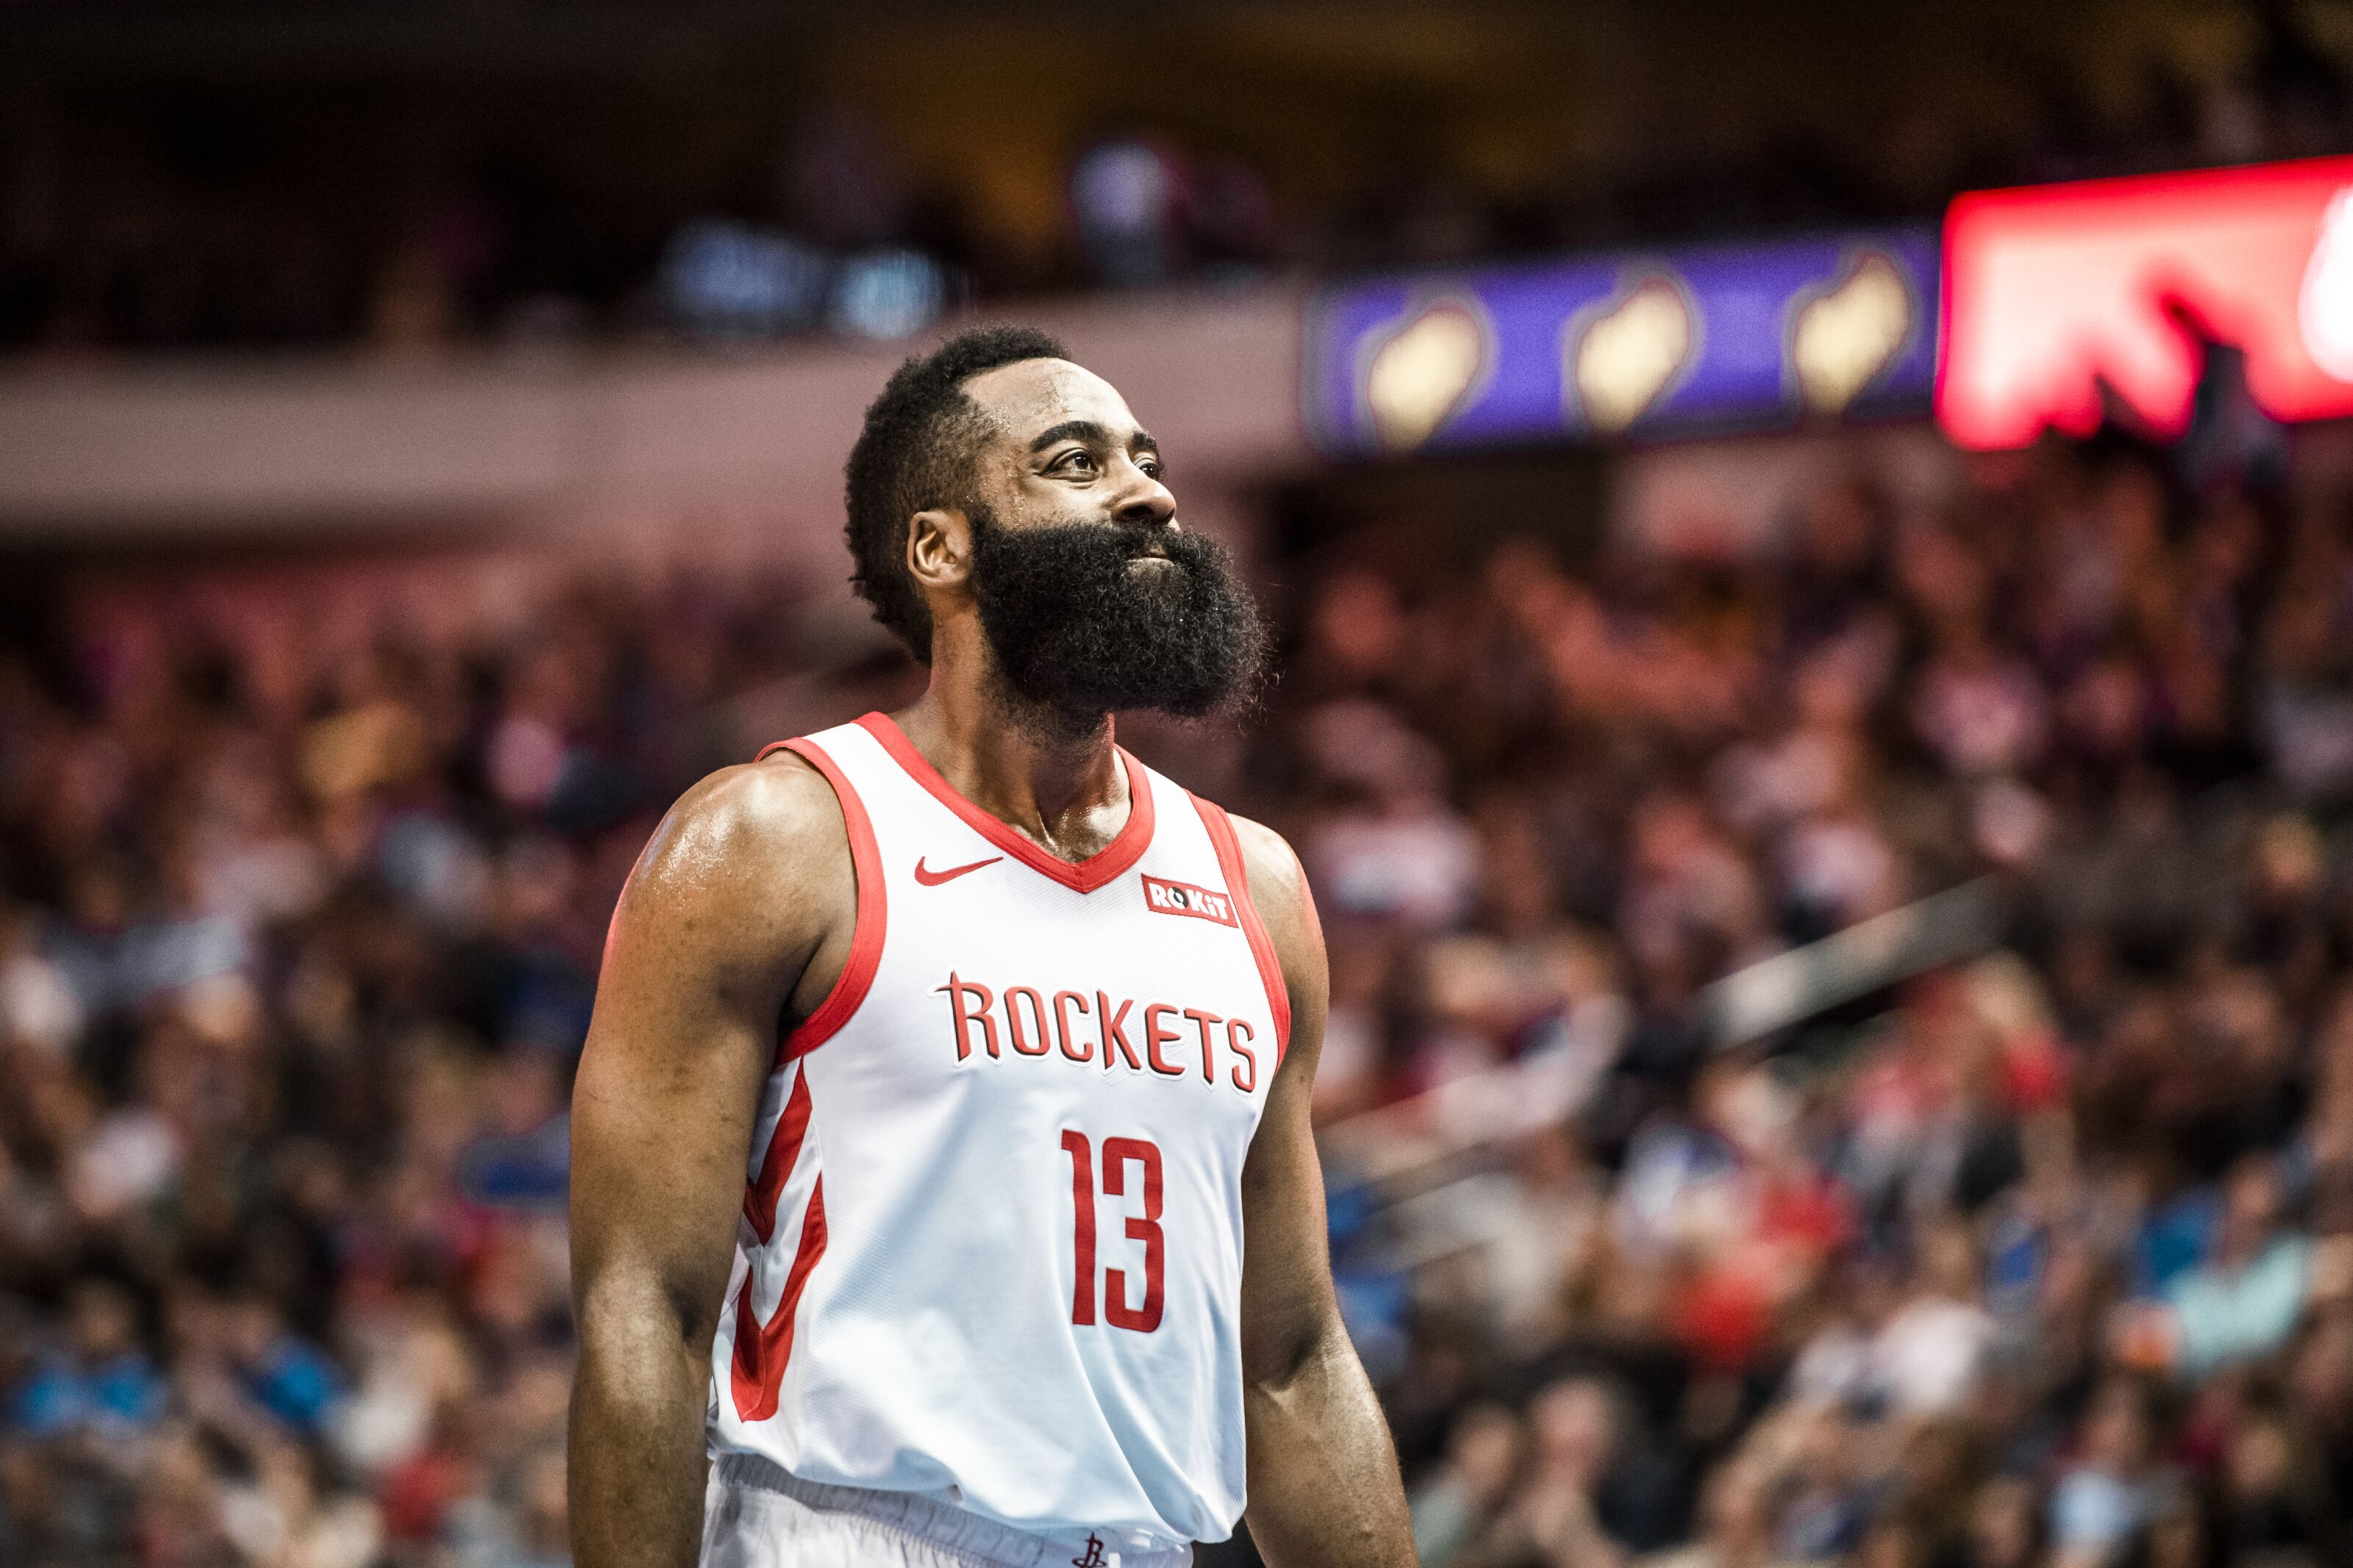 Houston Rockets: James Harden's scoring tear eclipses yet another record